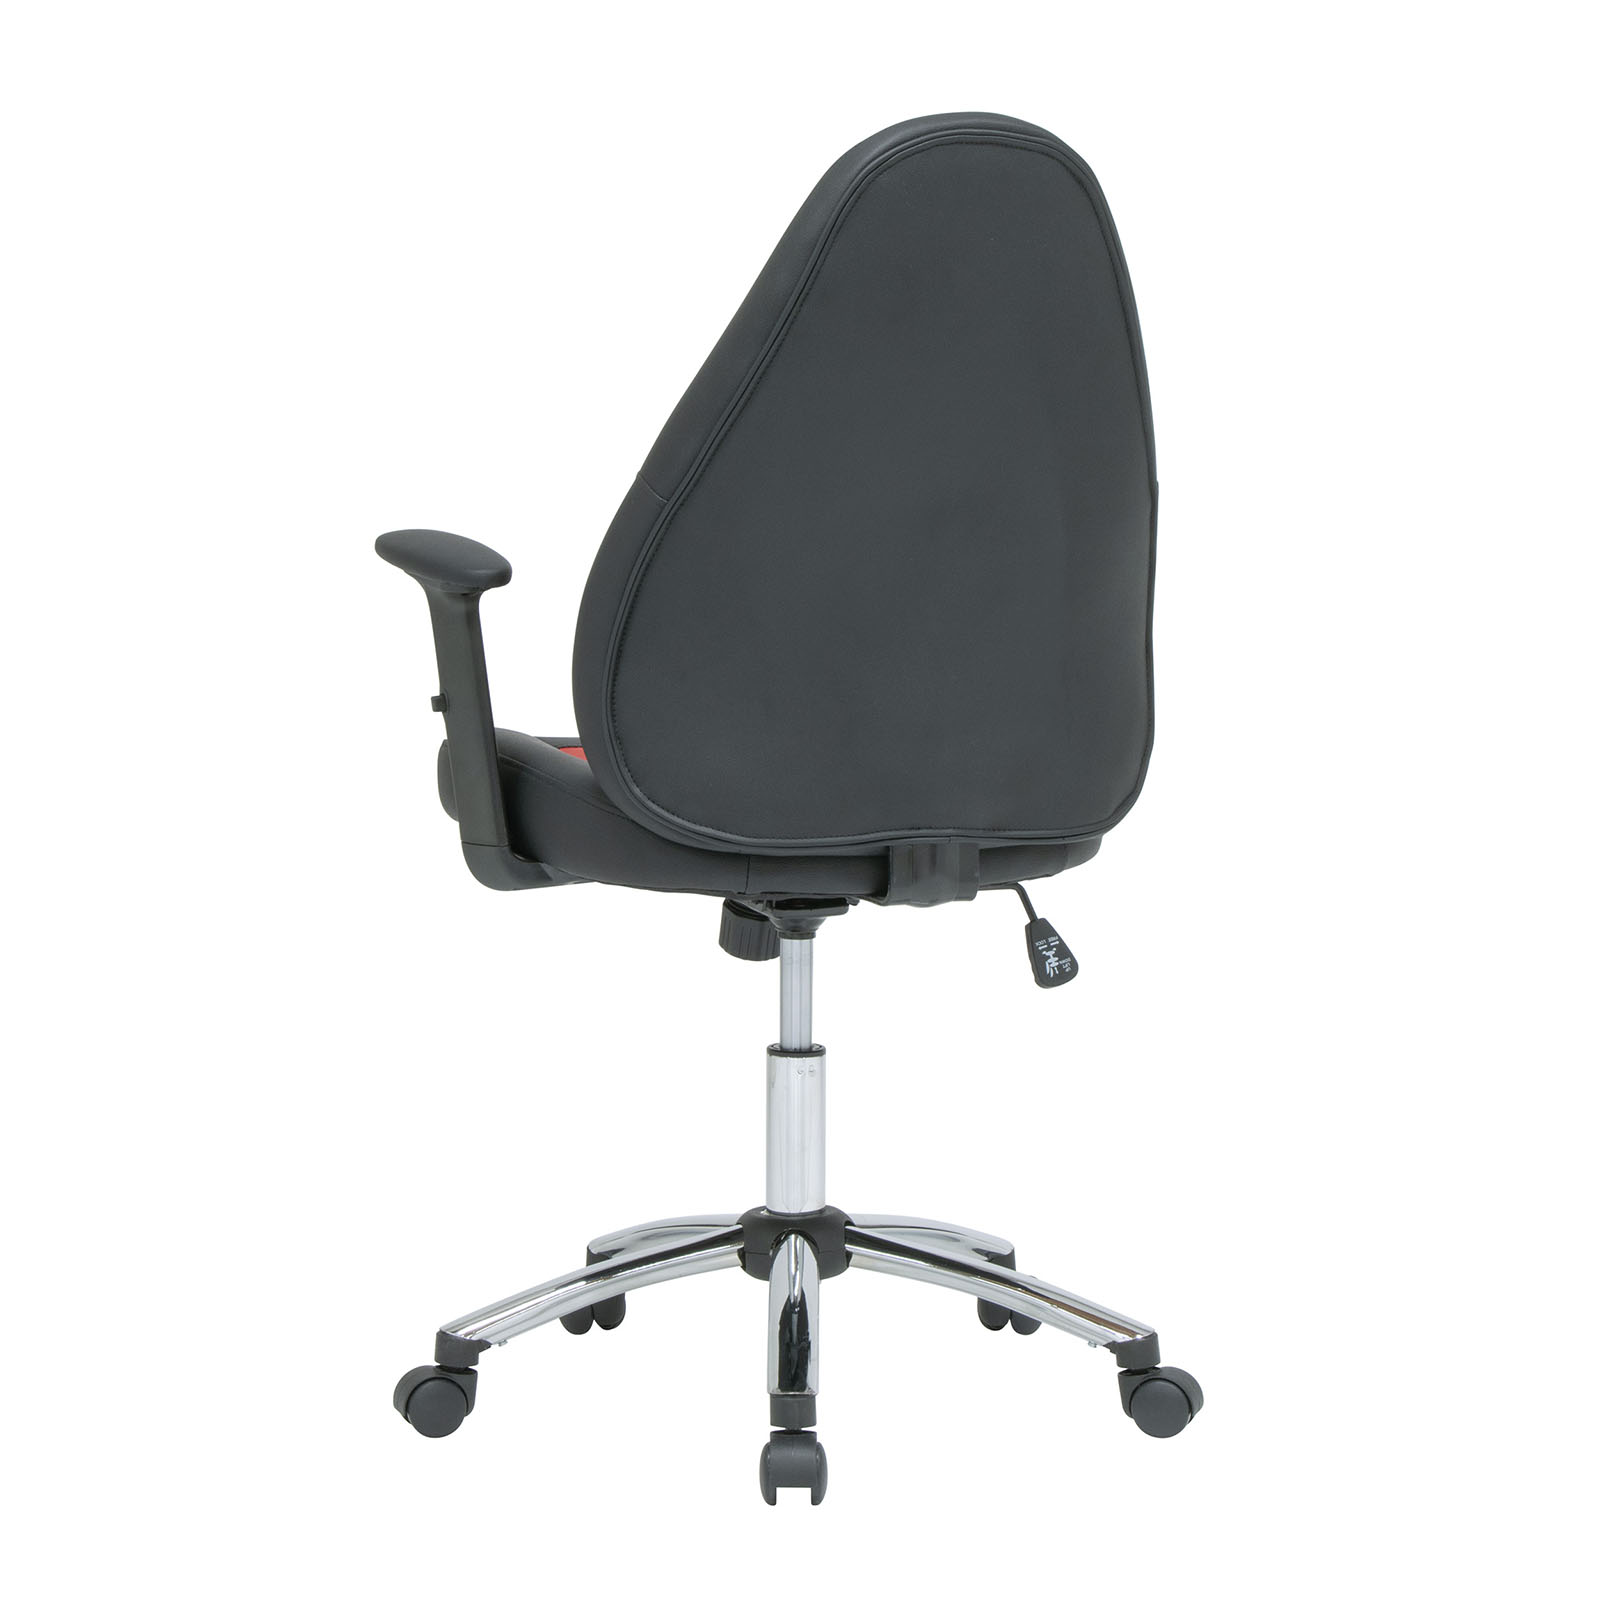 10661 Mid Back Gaming Chair L back